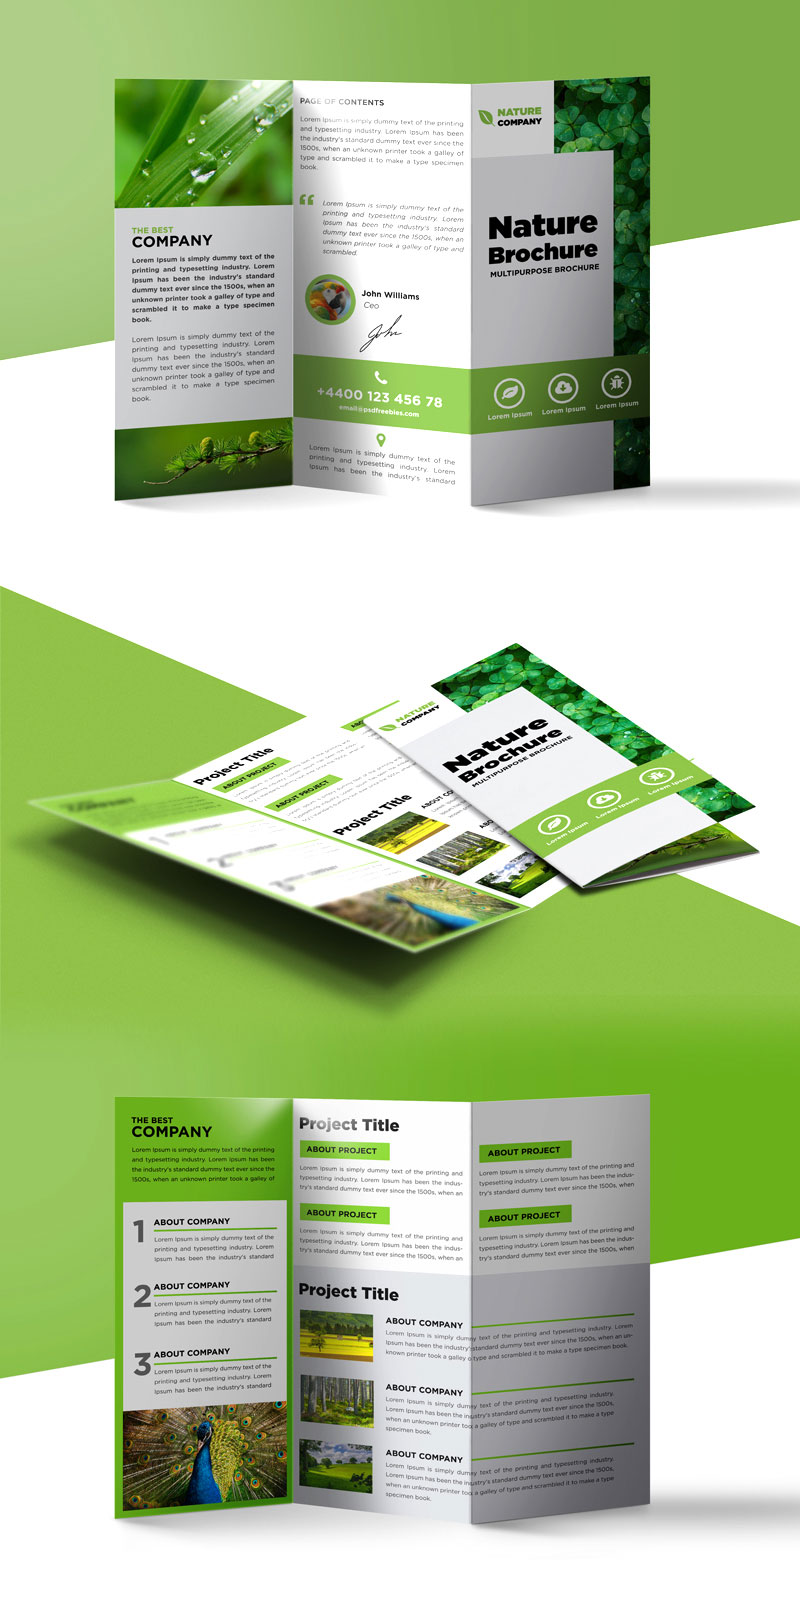 Nature tri fold brochure template free psd for Tri fold brochure template download